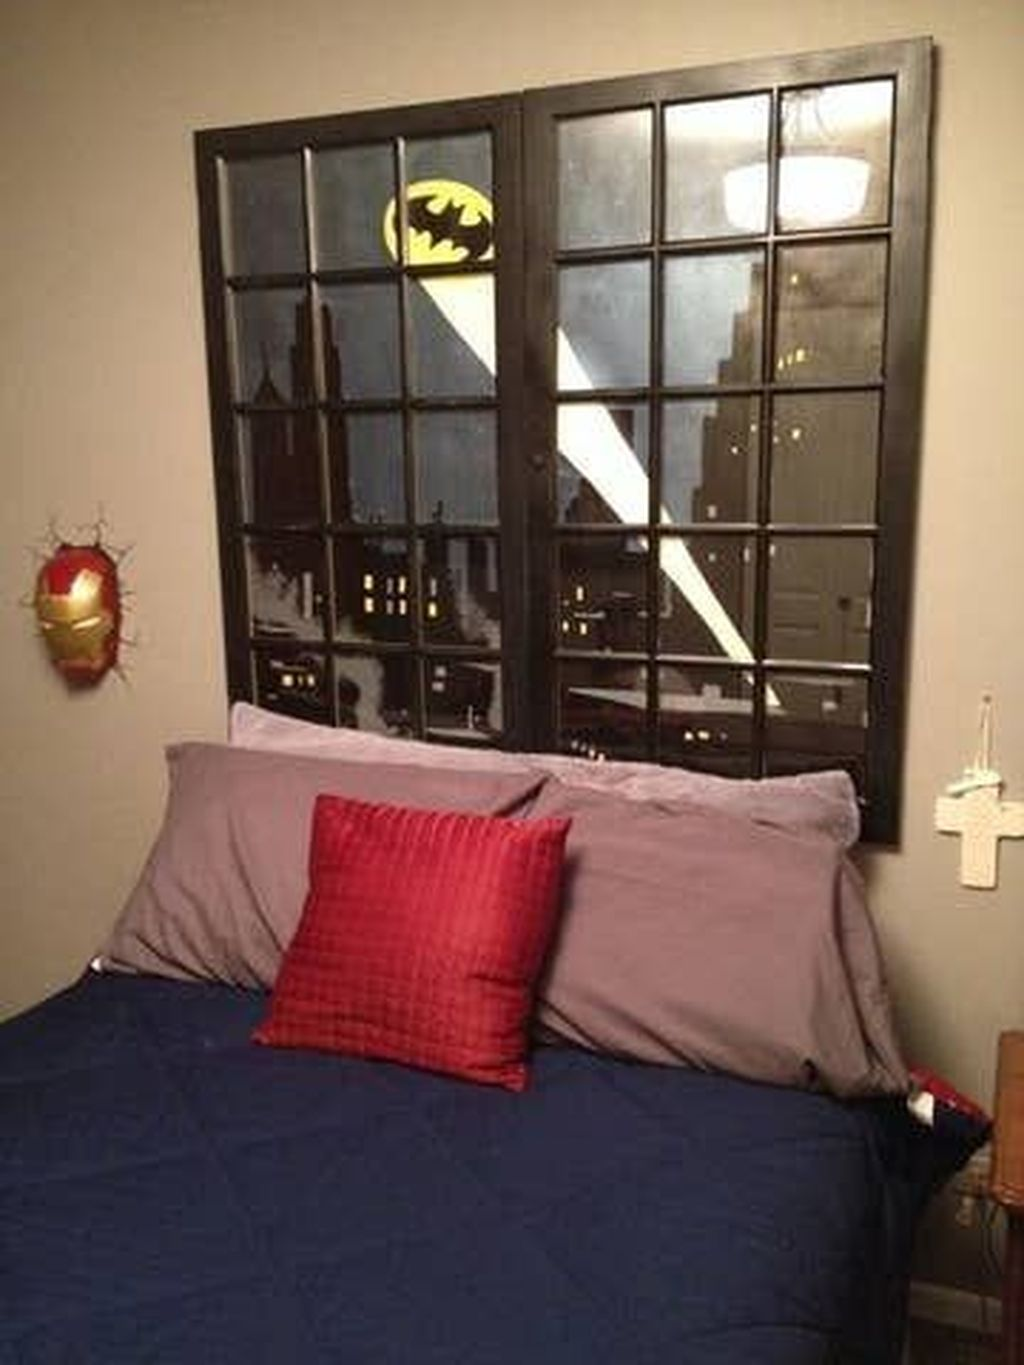 Fascinating Superhero Theme Bedroom Decor Ideas 29